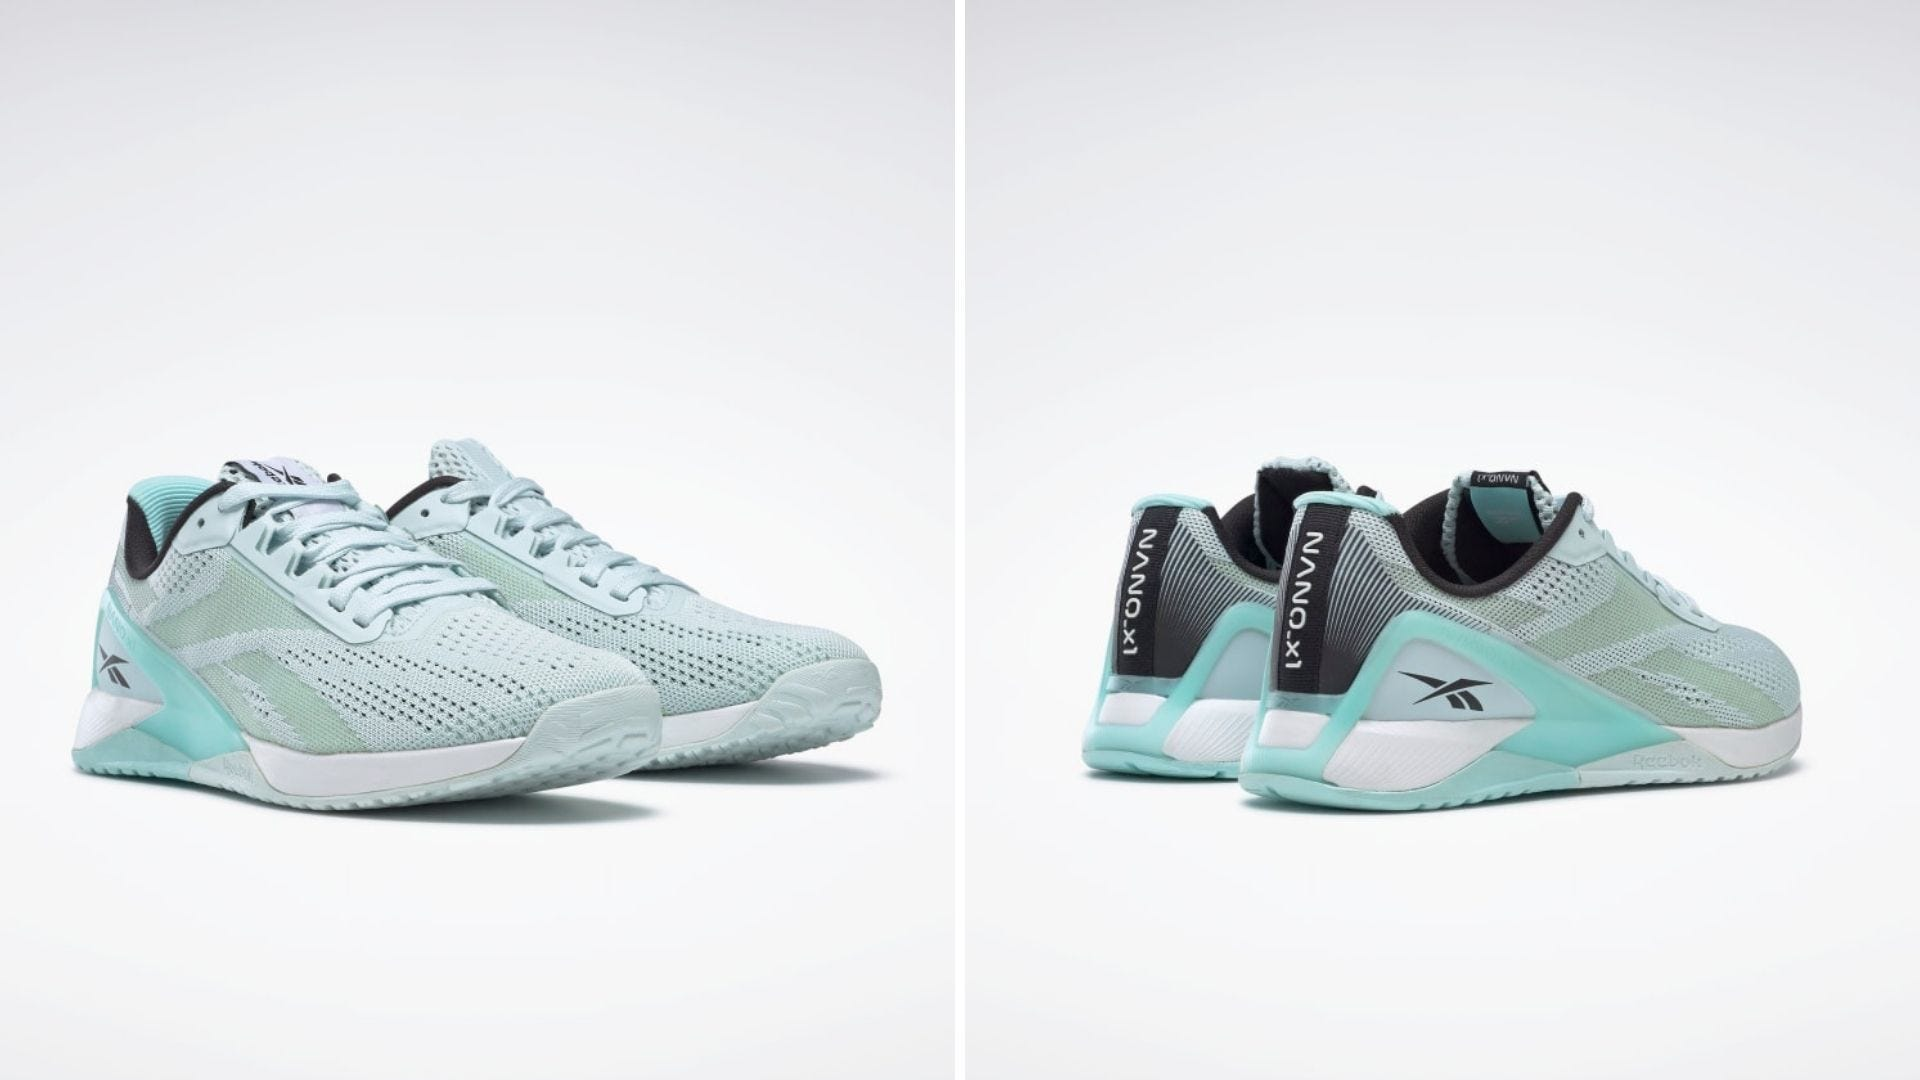 A pair of blue athletic shoes from the front and back